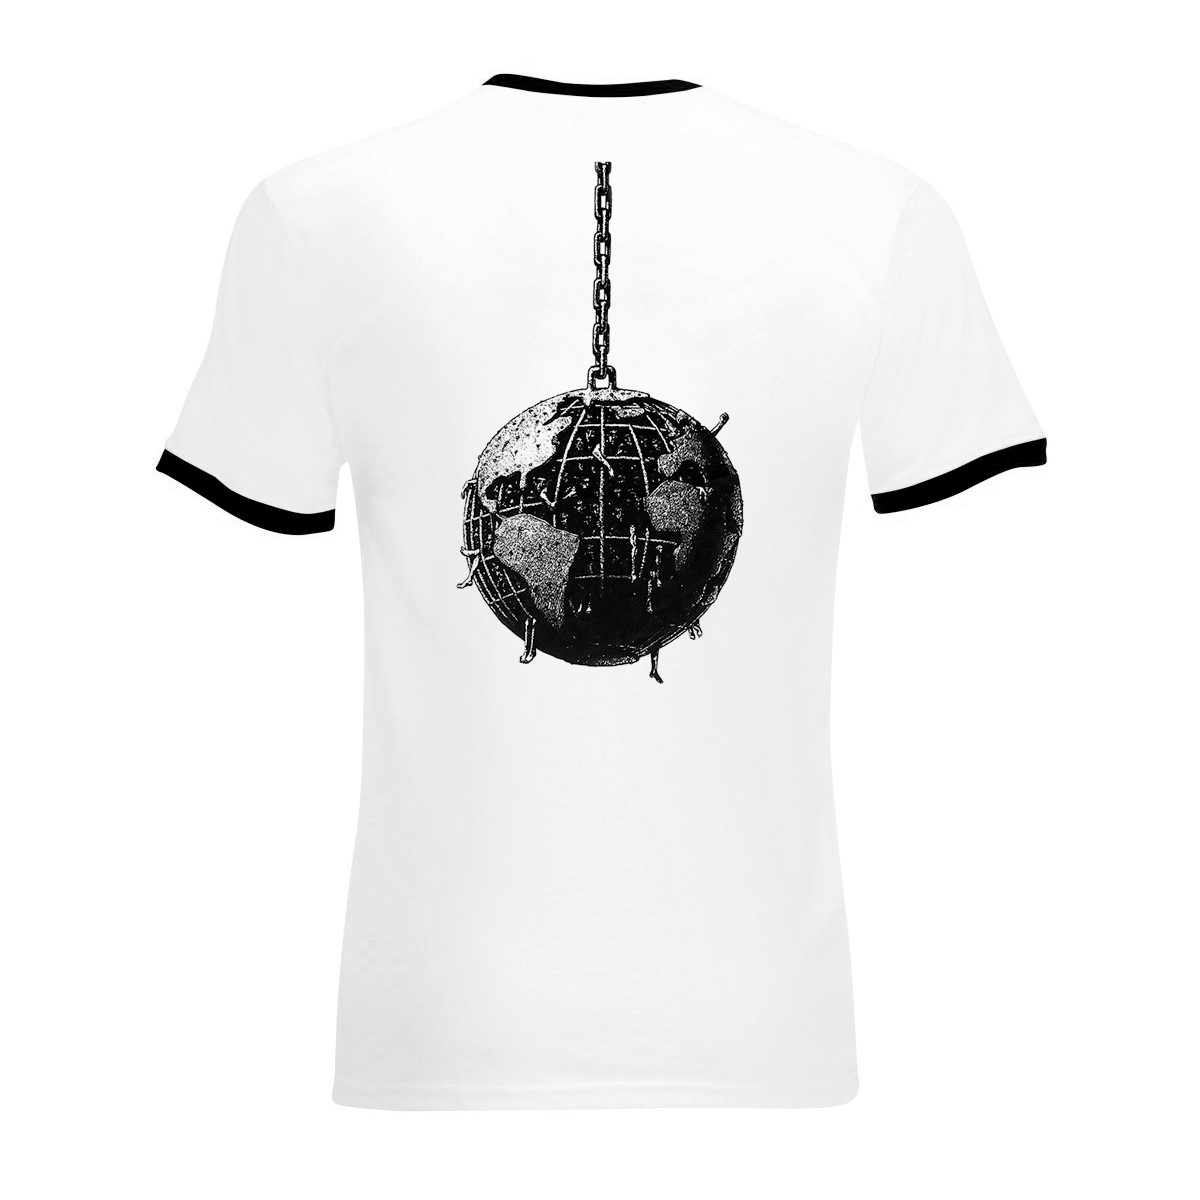 Wrecking Ball Ringer Tee - Rage Against the Machine